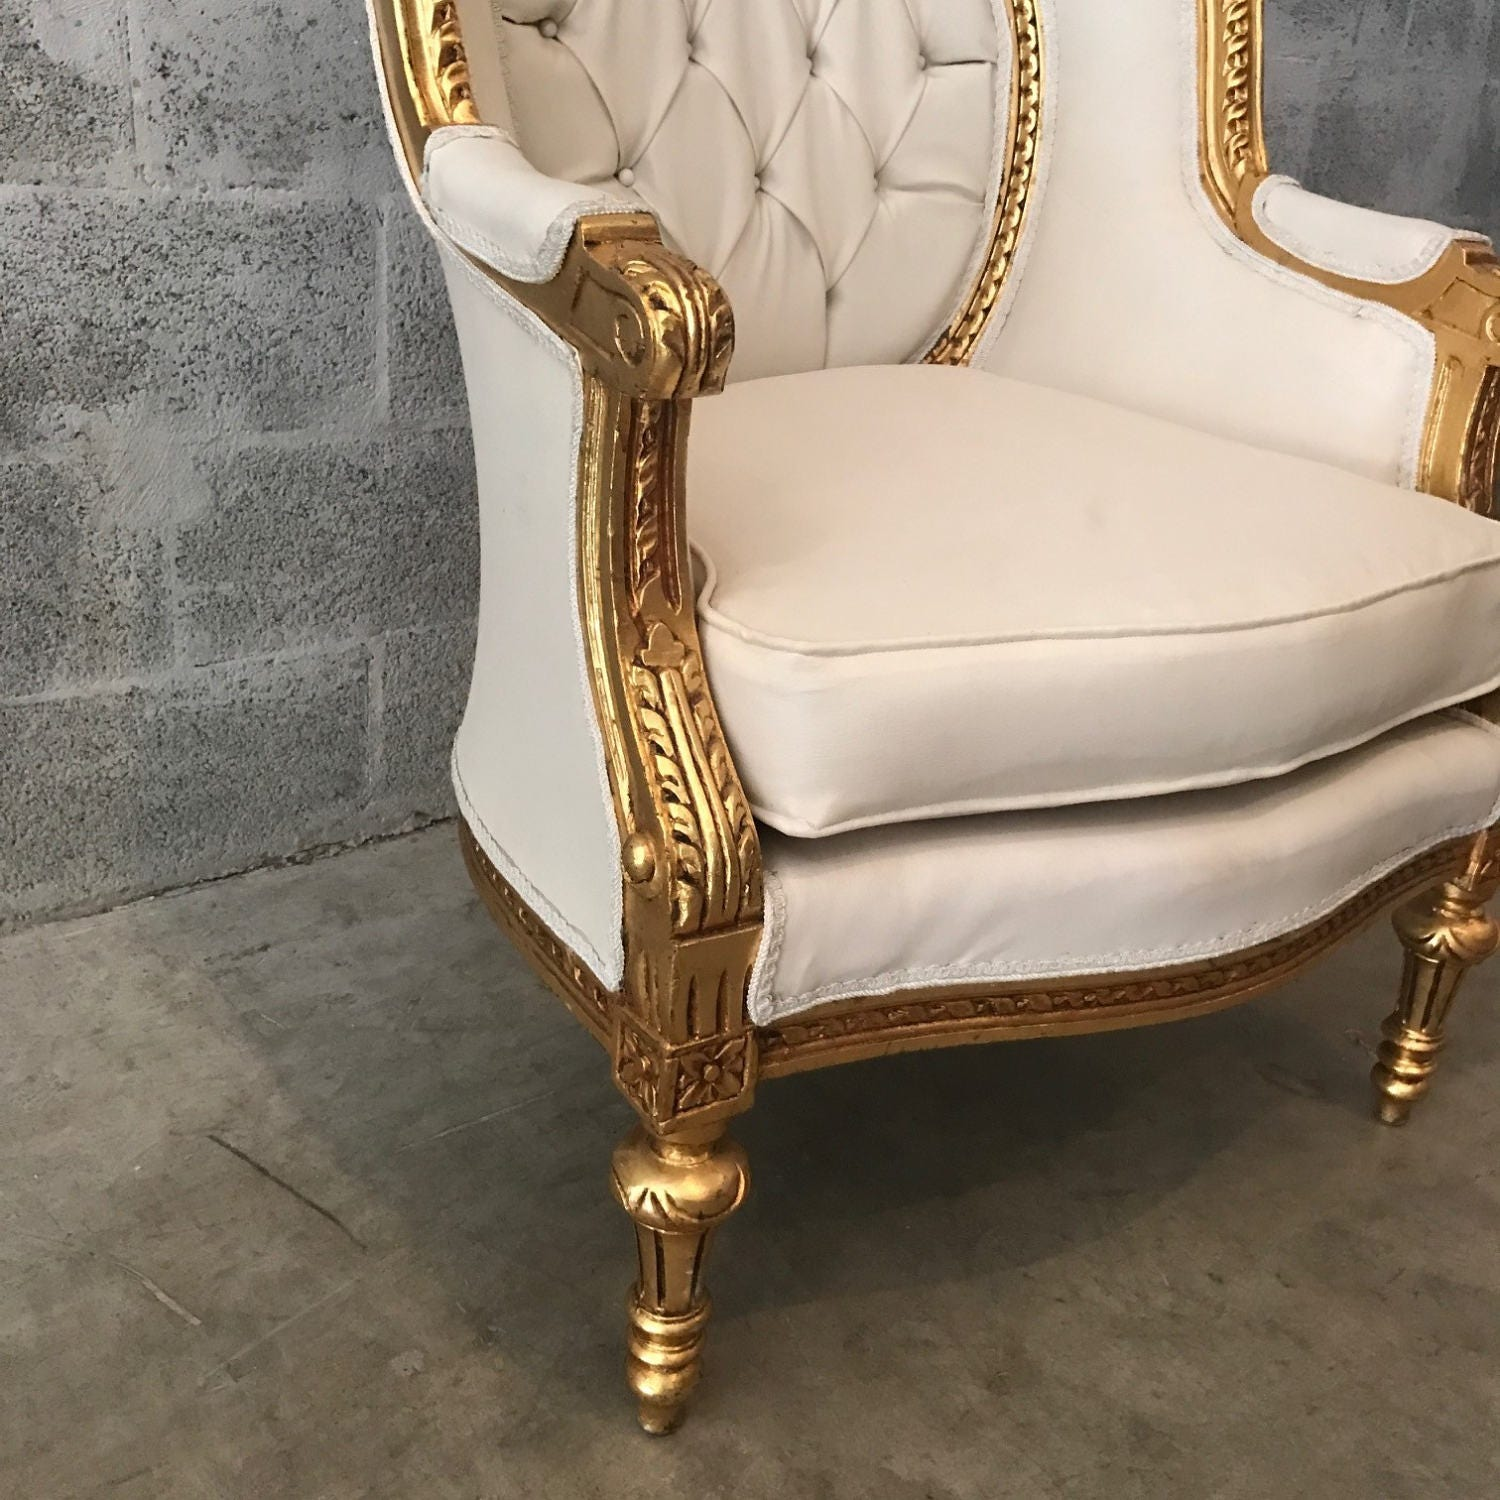 Antique louis xvi chair - Gallery Photo Gallery Photo Gallery Photo